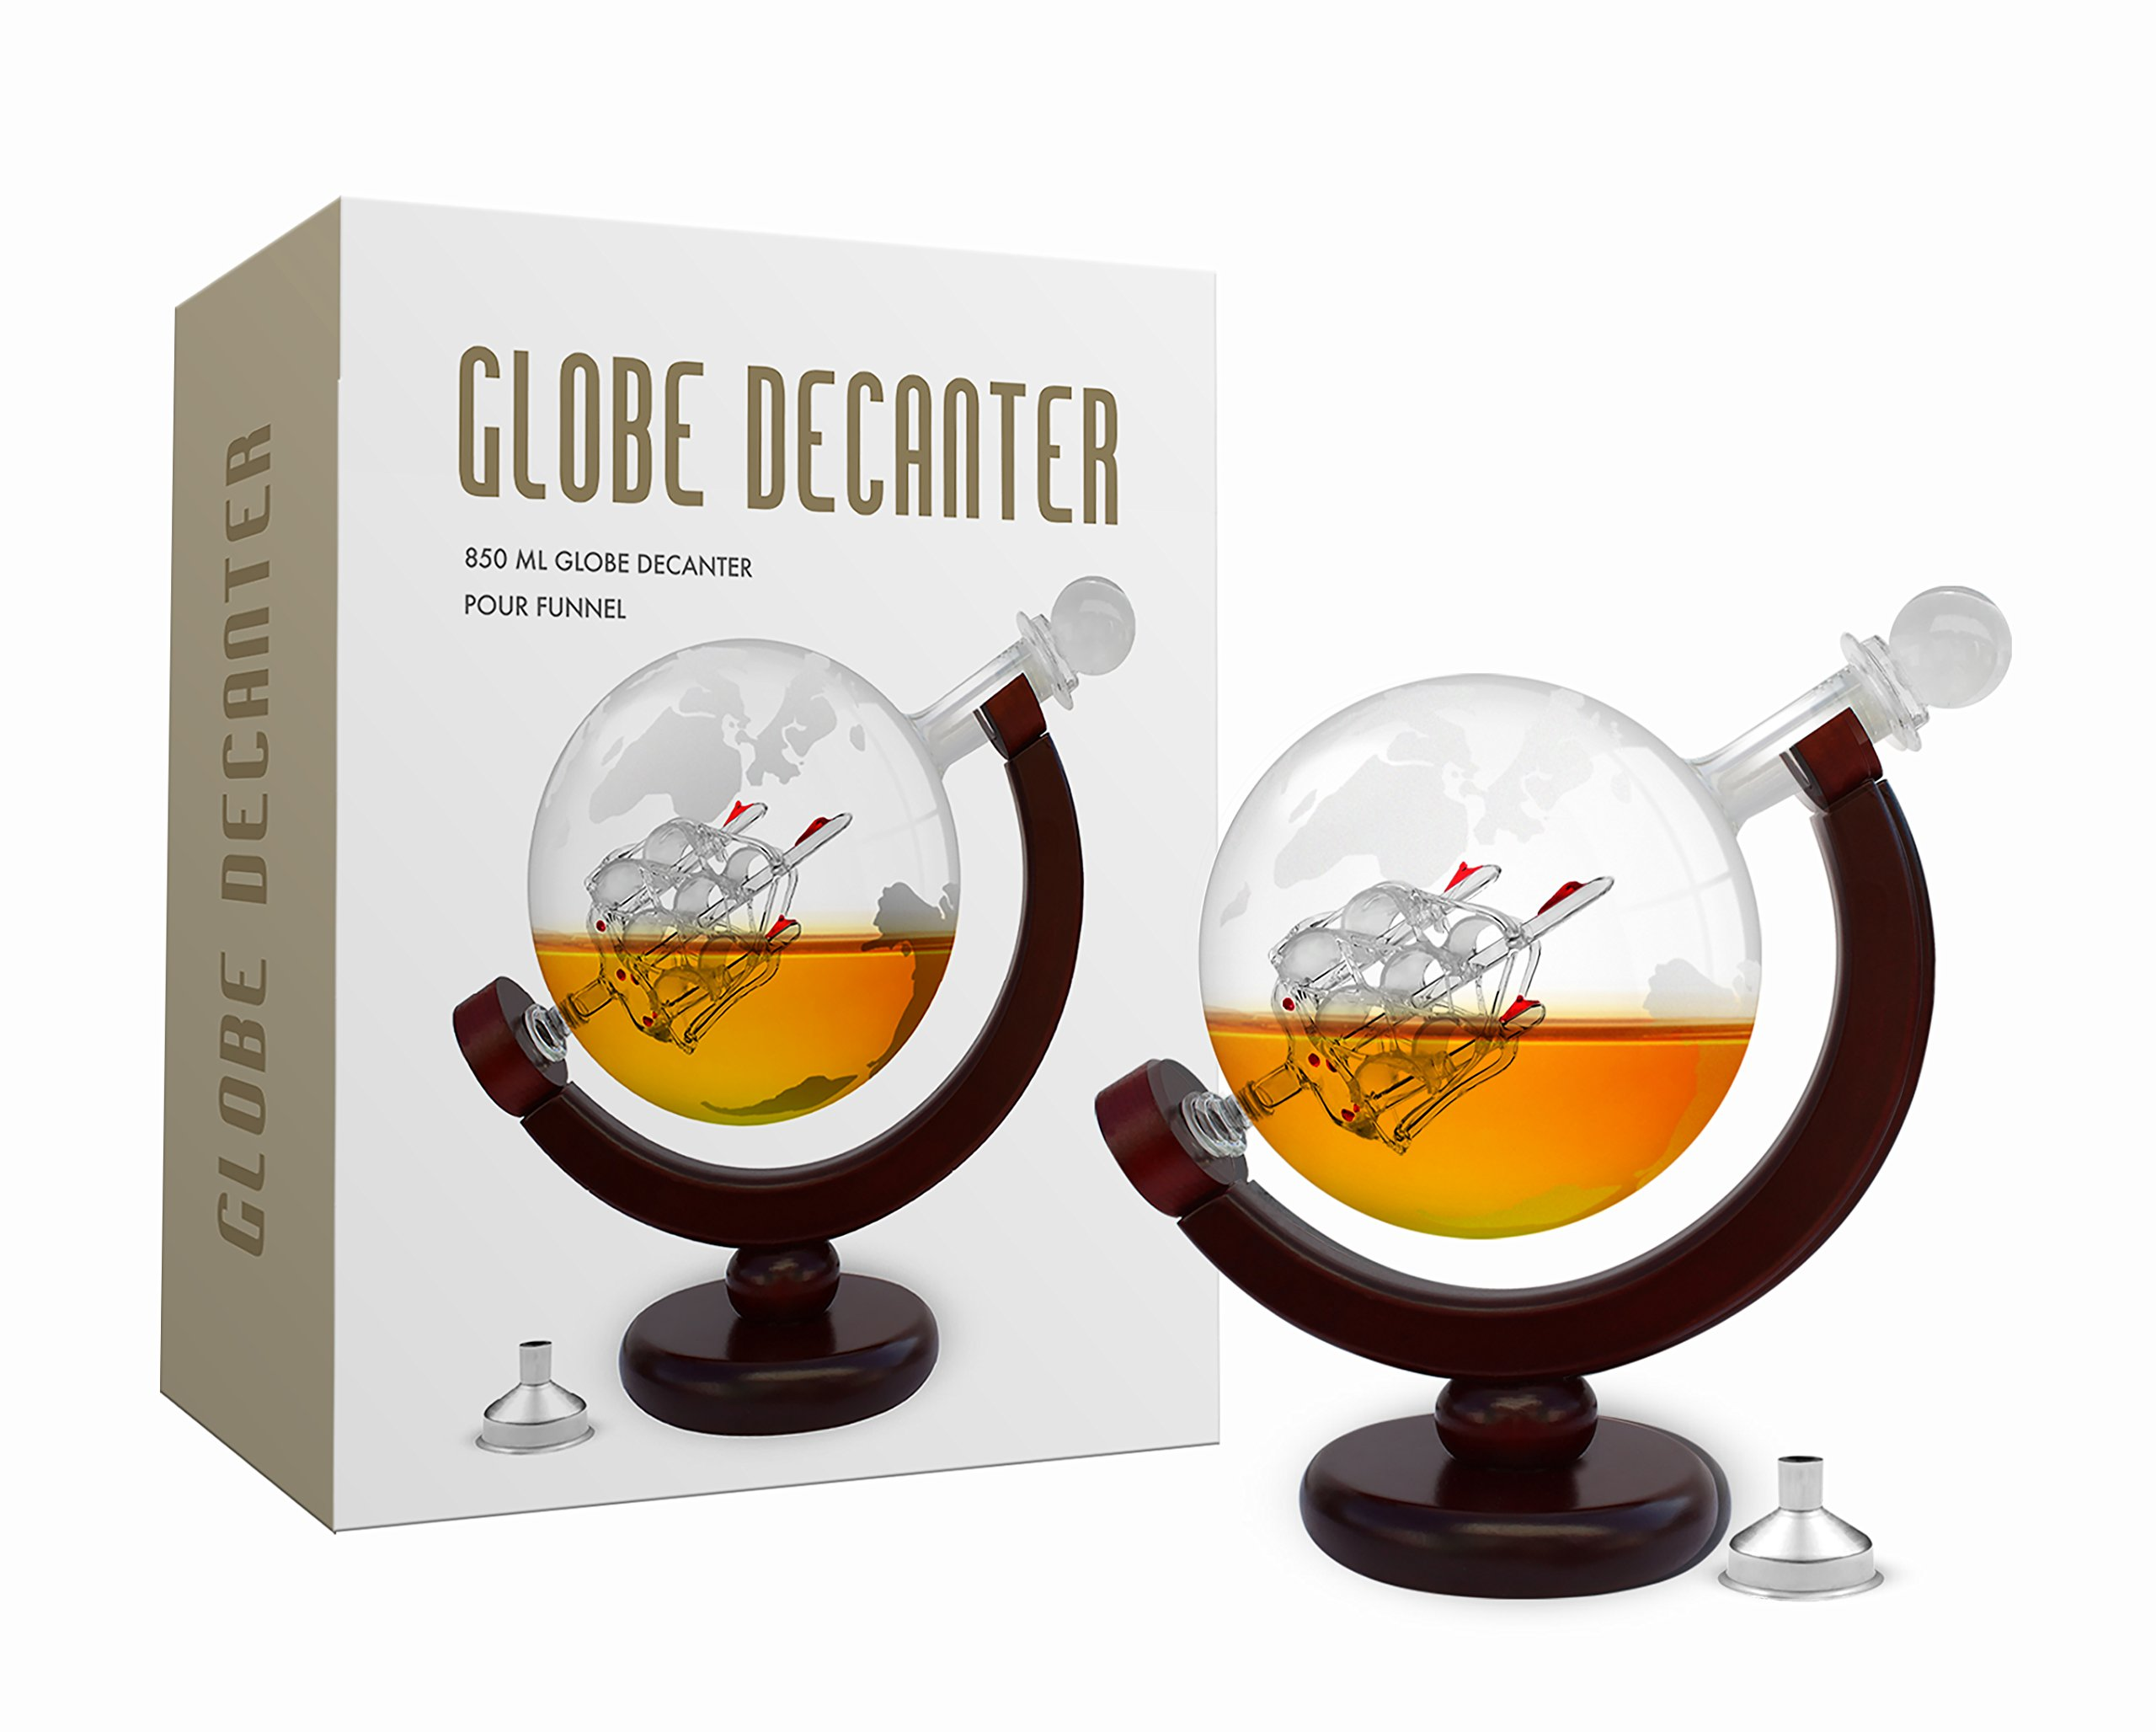 Whiskey Decanter Set World Etched Globe Decanter Antique Ship Glass Stopper Pour Funnel Liquor Dispenser Spirits Scotch Bourbon Vodka Rum Wine Tequila Brandy Perfect Gift 850 ml